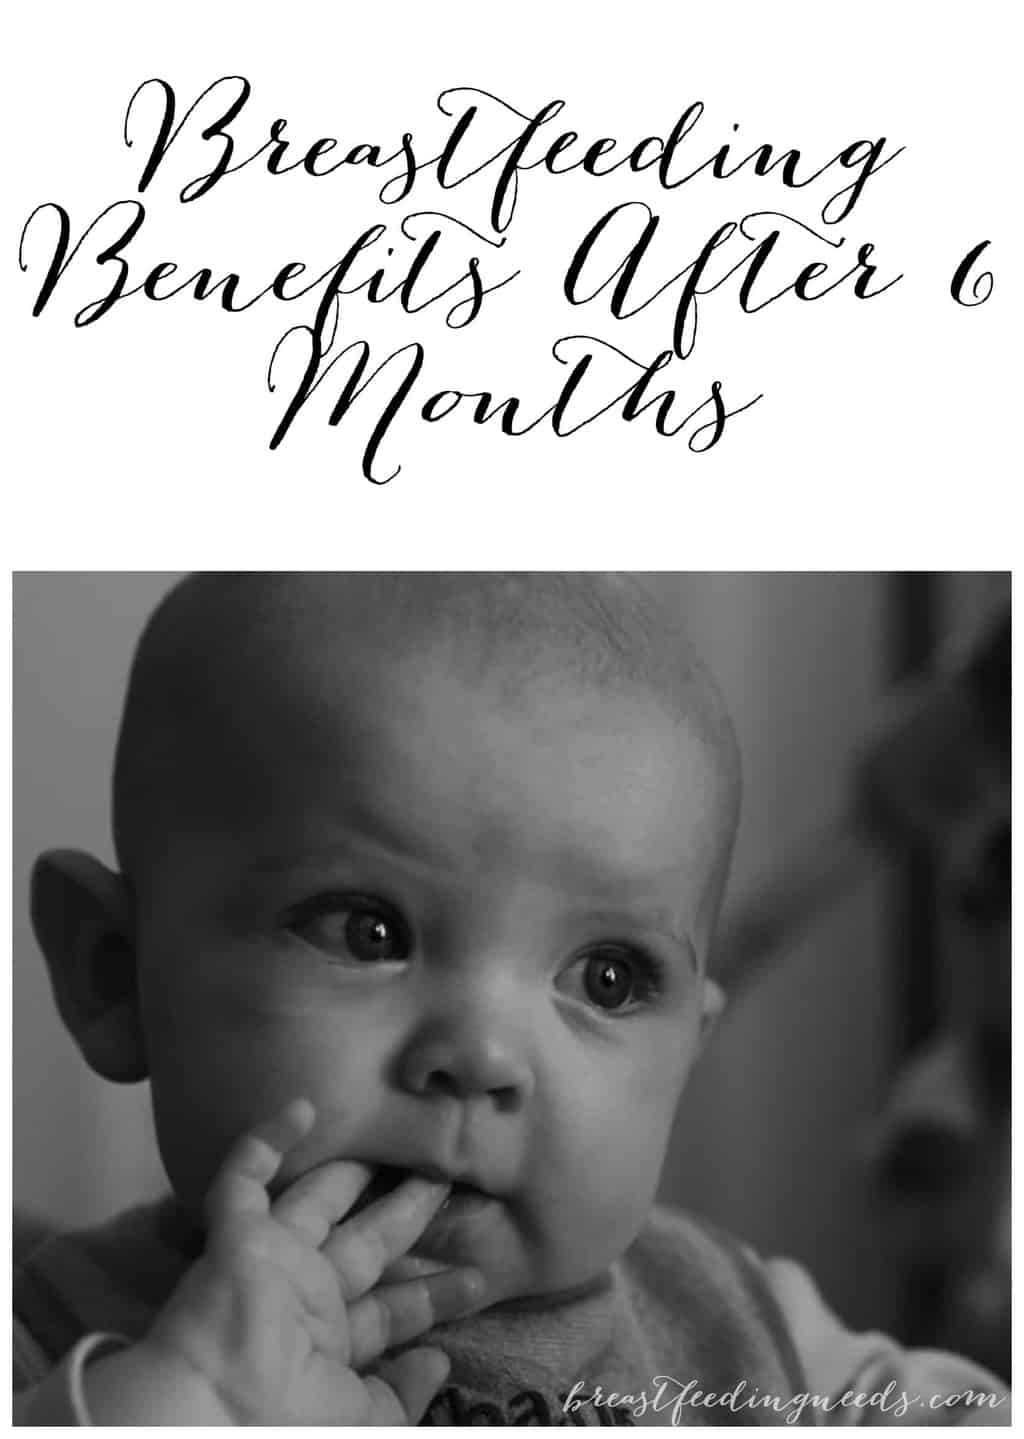 Benefits of breastfeeding after 6 months